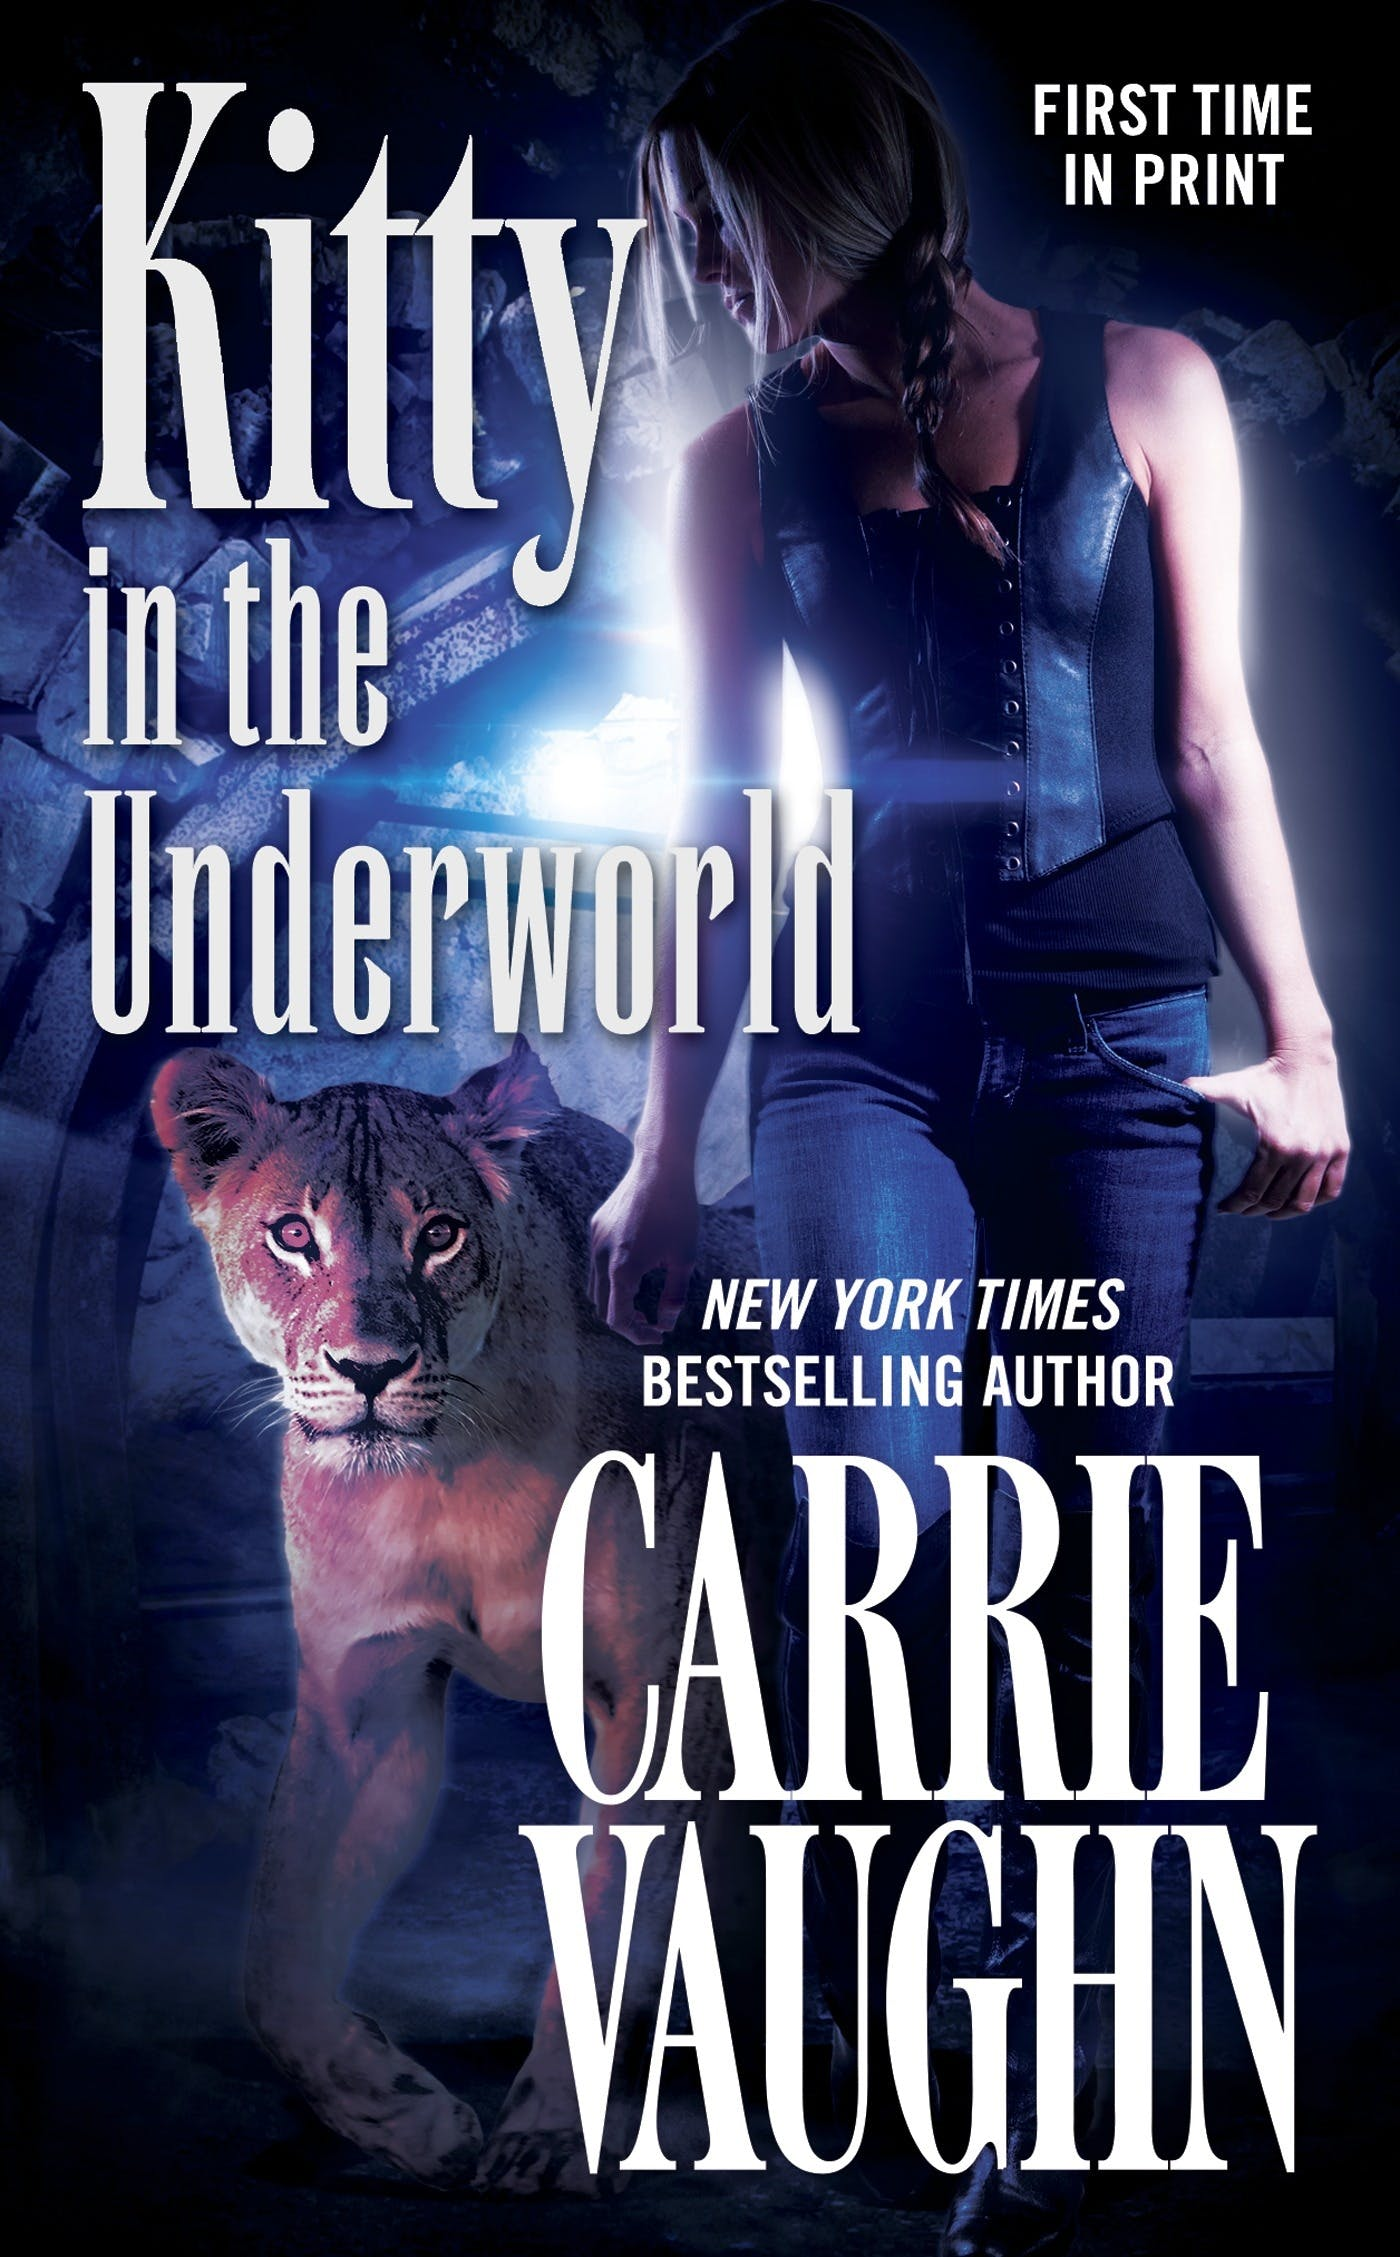 Image of Kitty in the Underworld